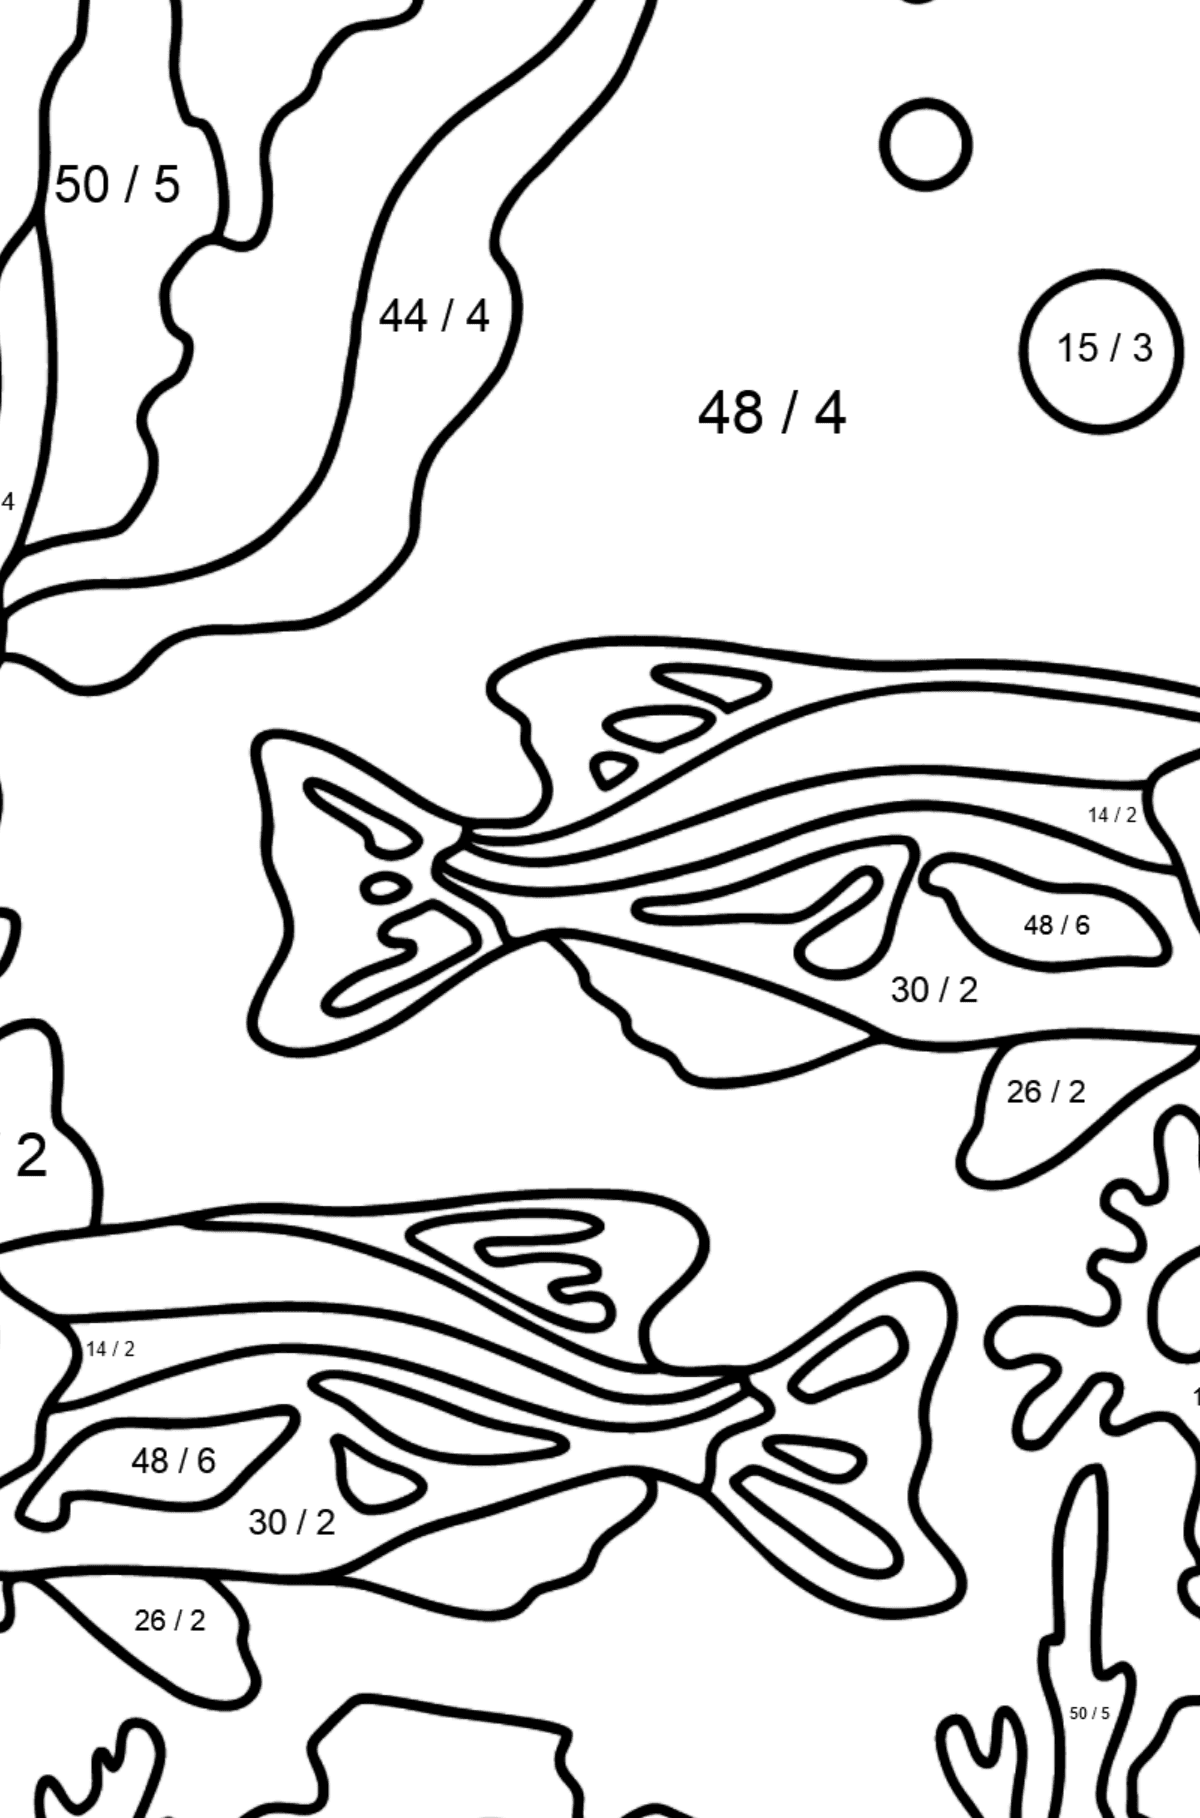 Coloring Page - Fish are Swimming Together Peacefully - Math Coloring - Division for Kids